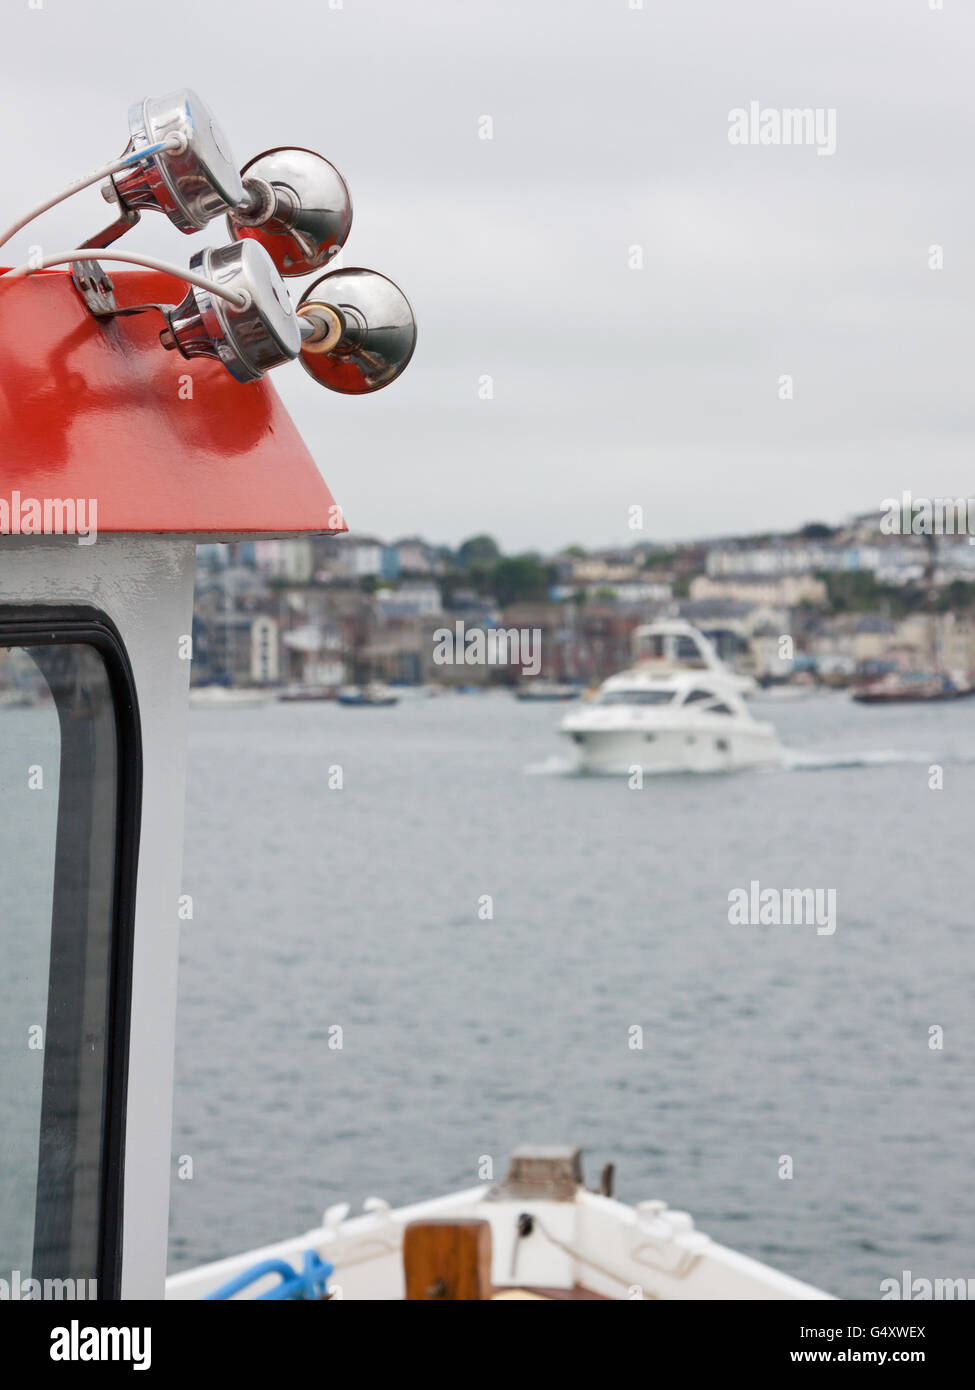 Siren speakers on board a vessel used to warn other shipping of its presence in limited visibility - Stock Image